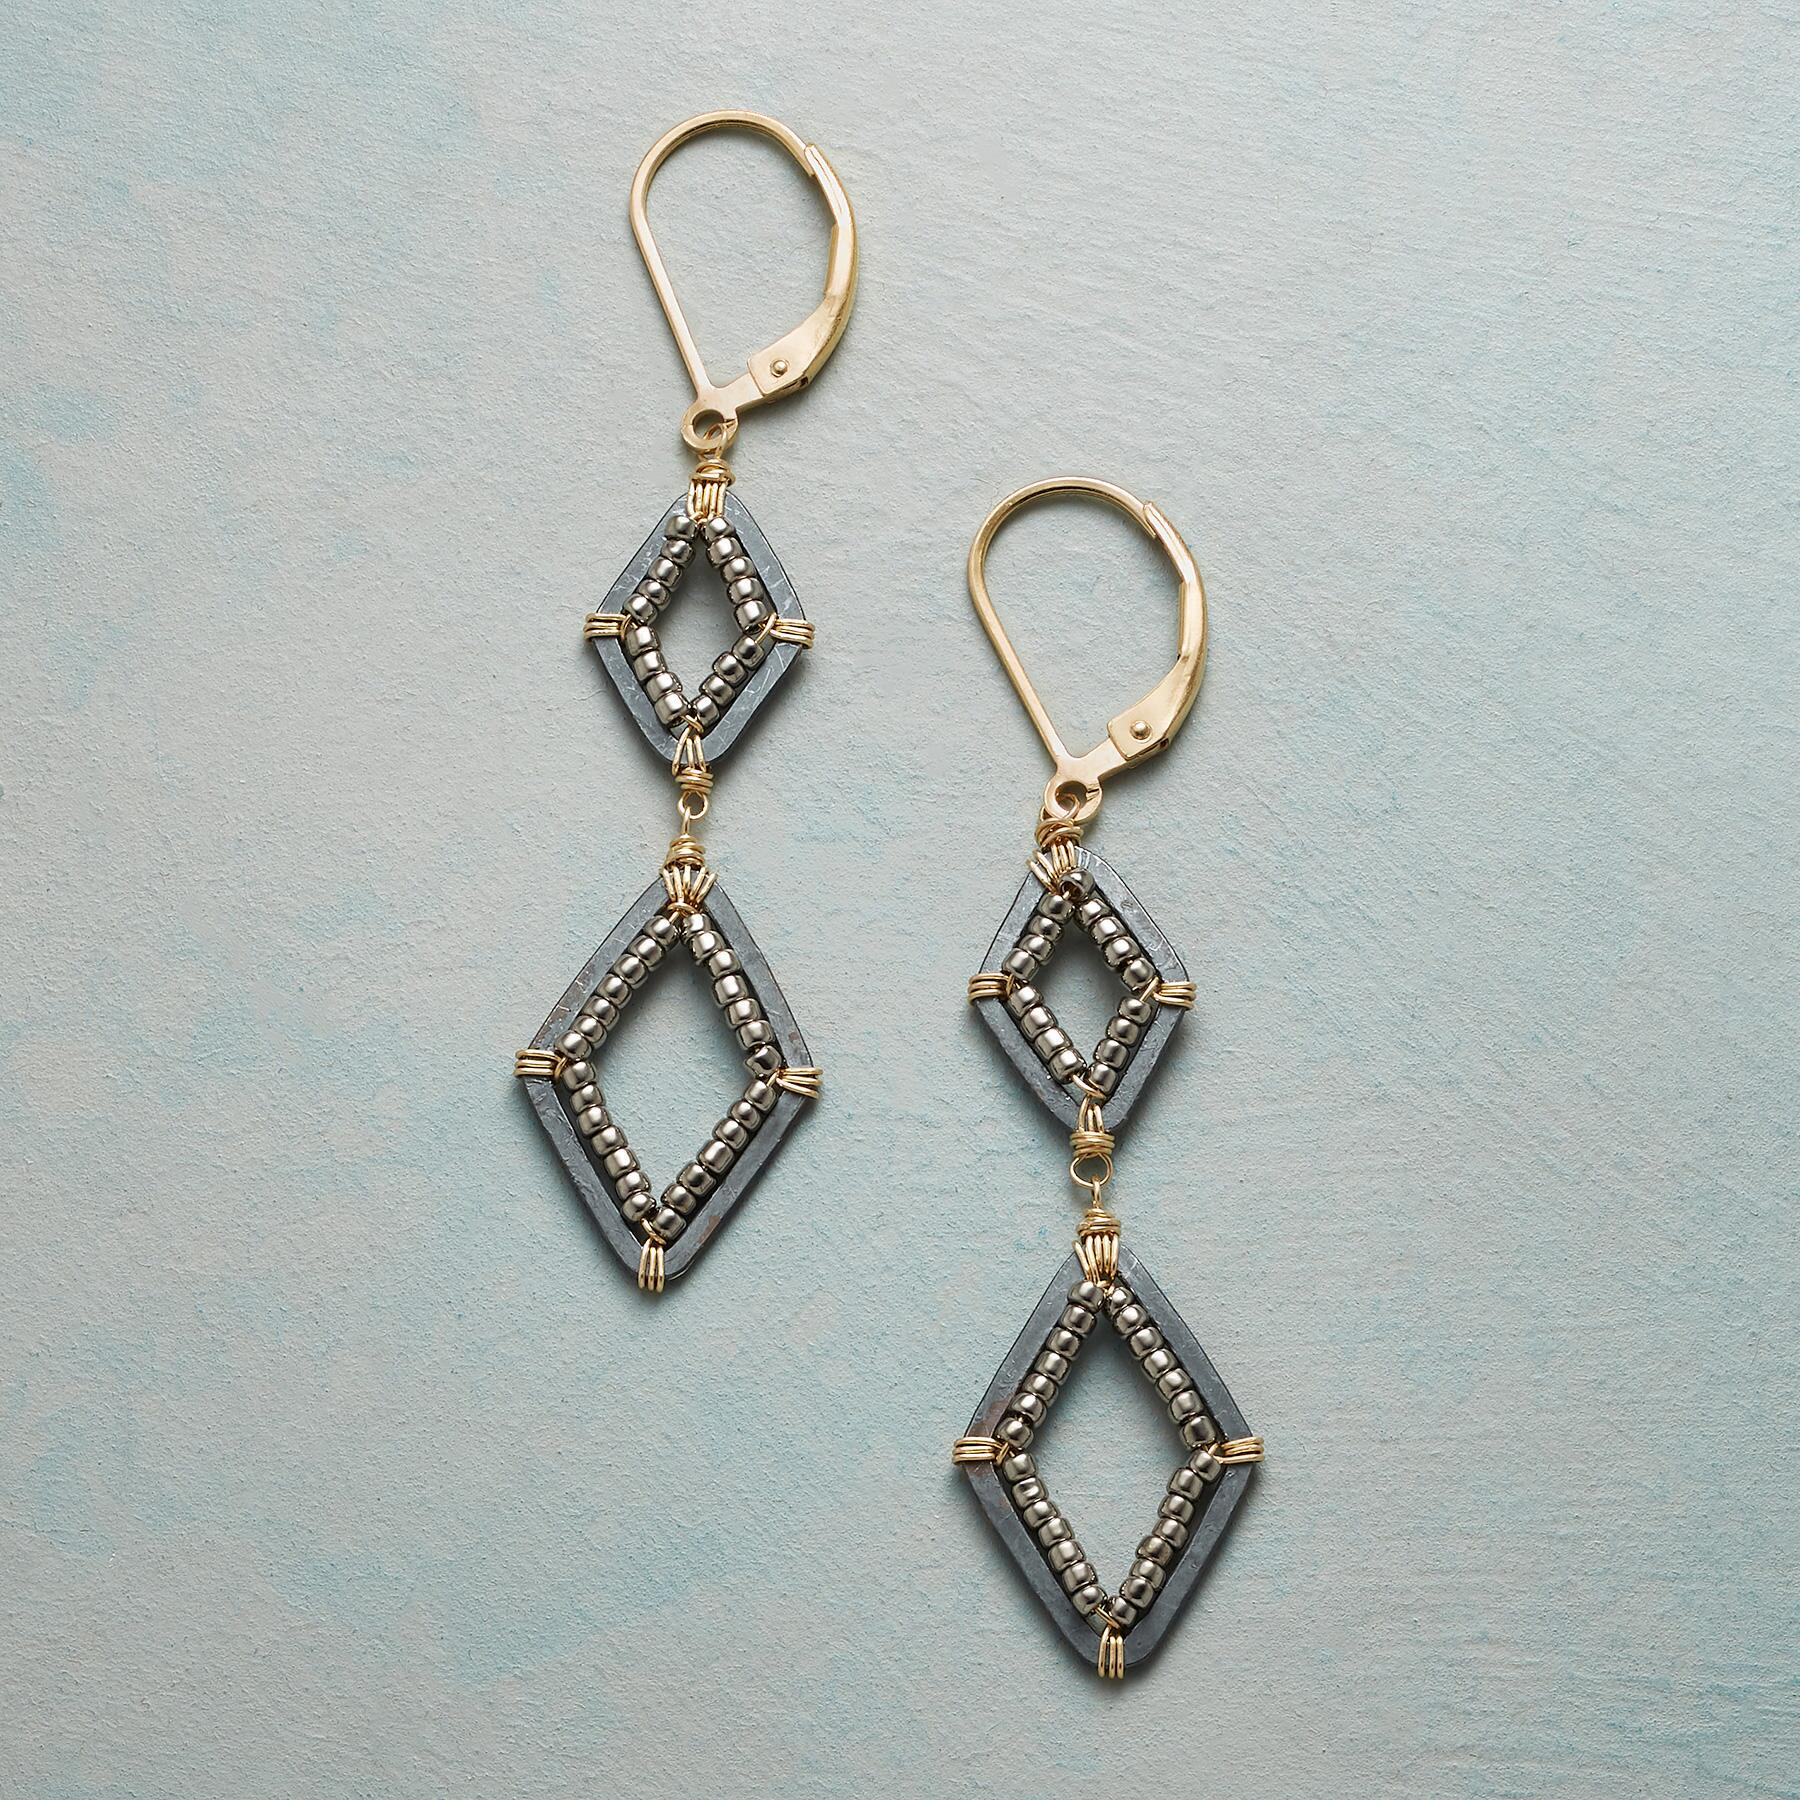 TWO OF A PAIR EARRINGS: View 1